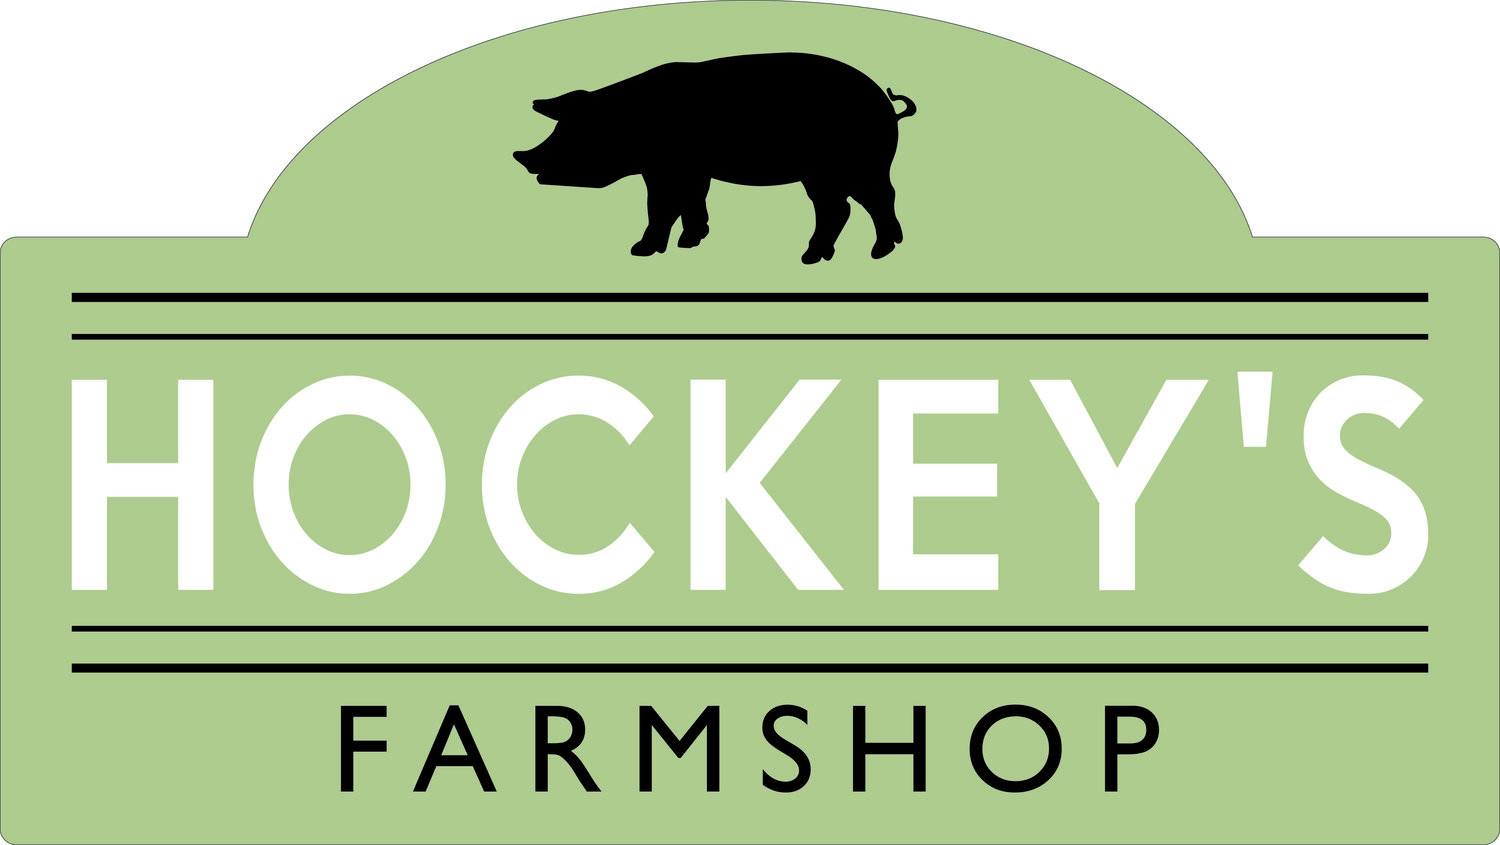 Hockey's Farm